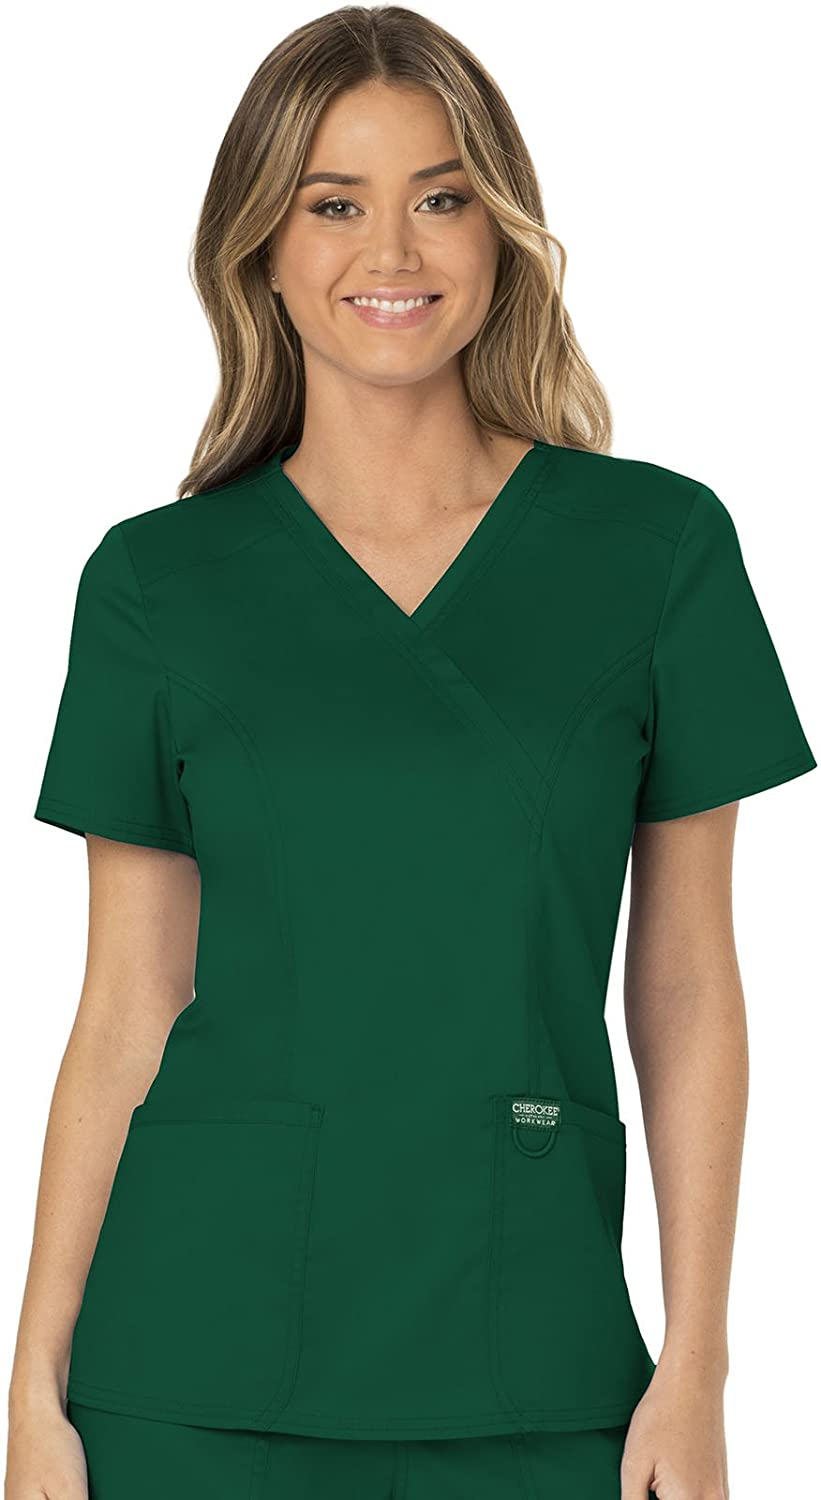 CHEROKEE Workwear Revolution Mock Wrap Scrub Top: Clothing